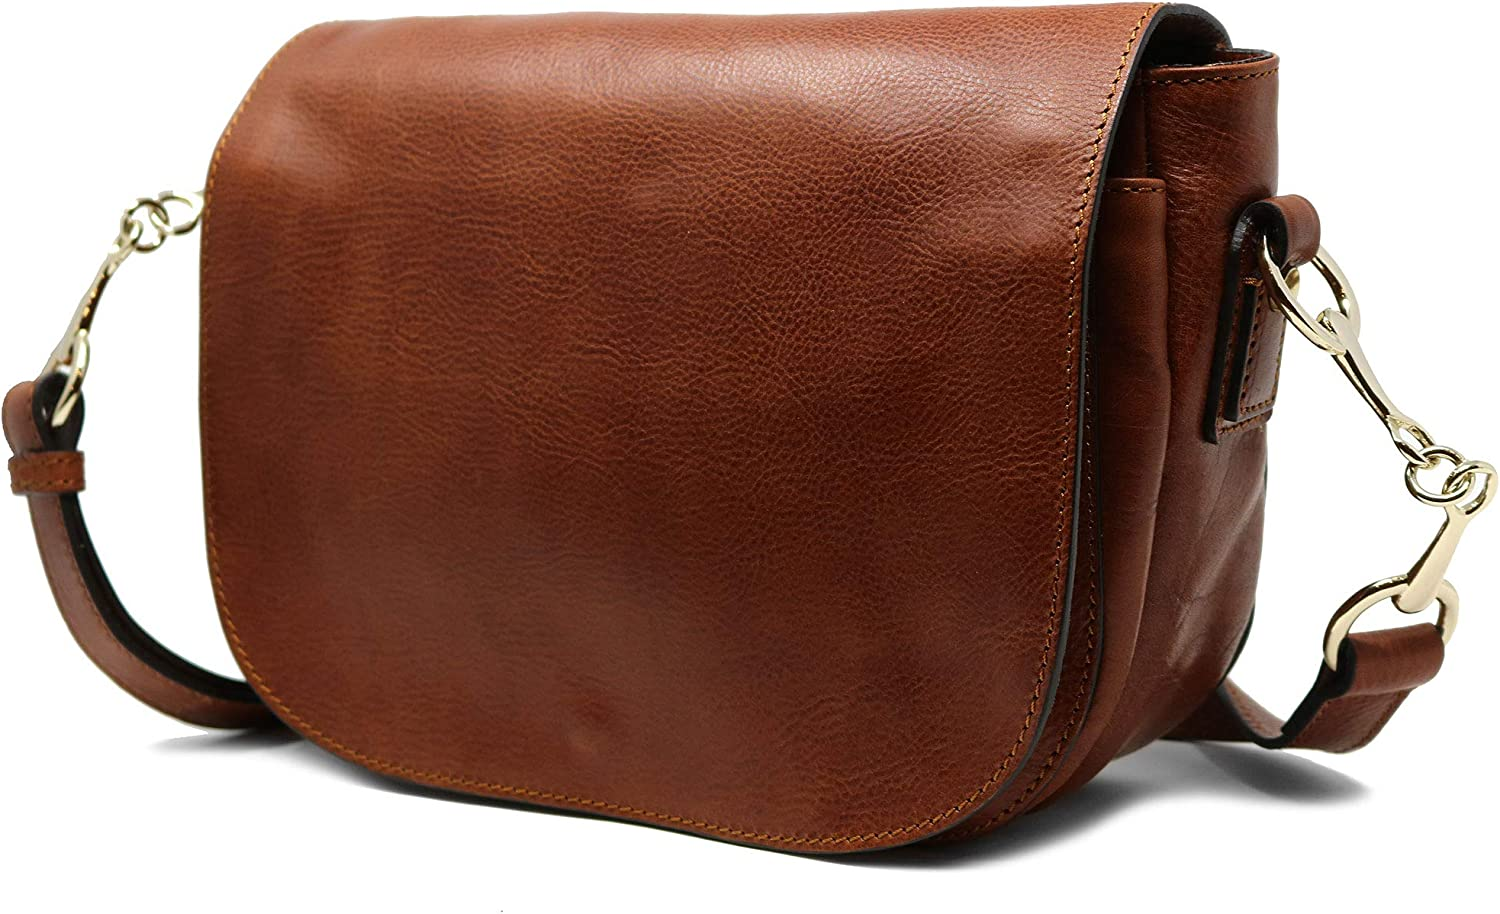 Floto Women's Roma Saddle Bag in Brown Italian Calfskin Leather - handbag shoulder bag